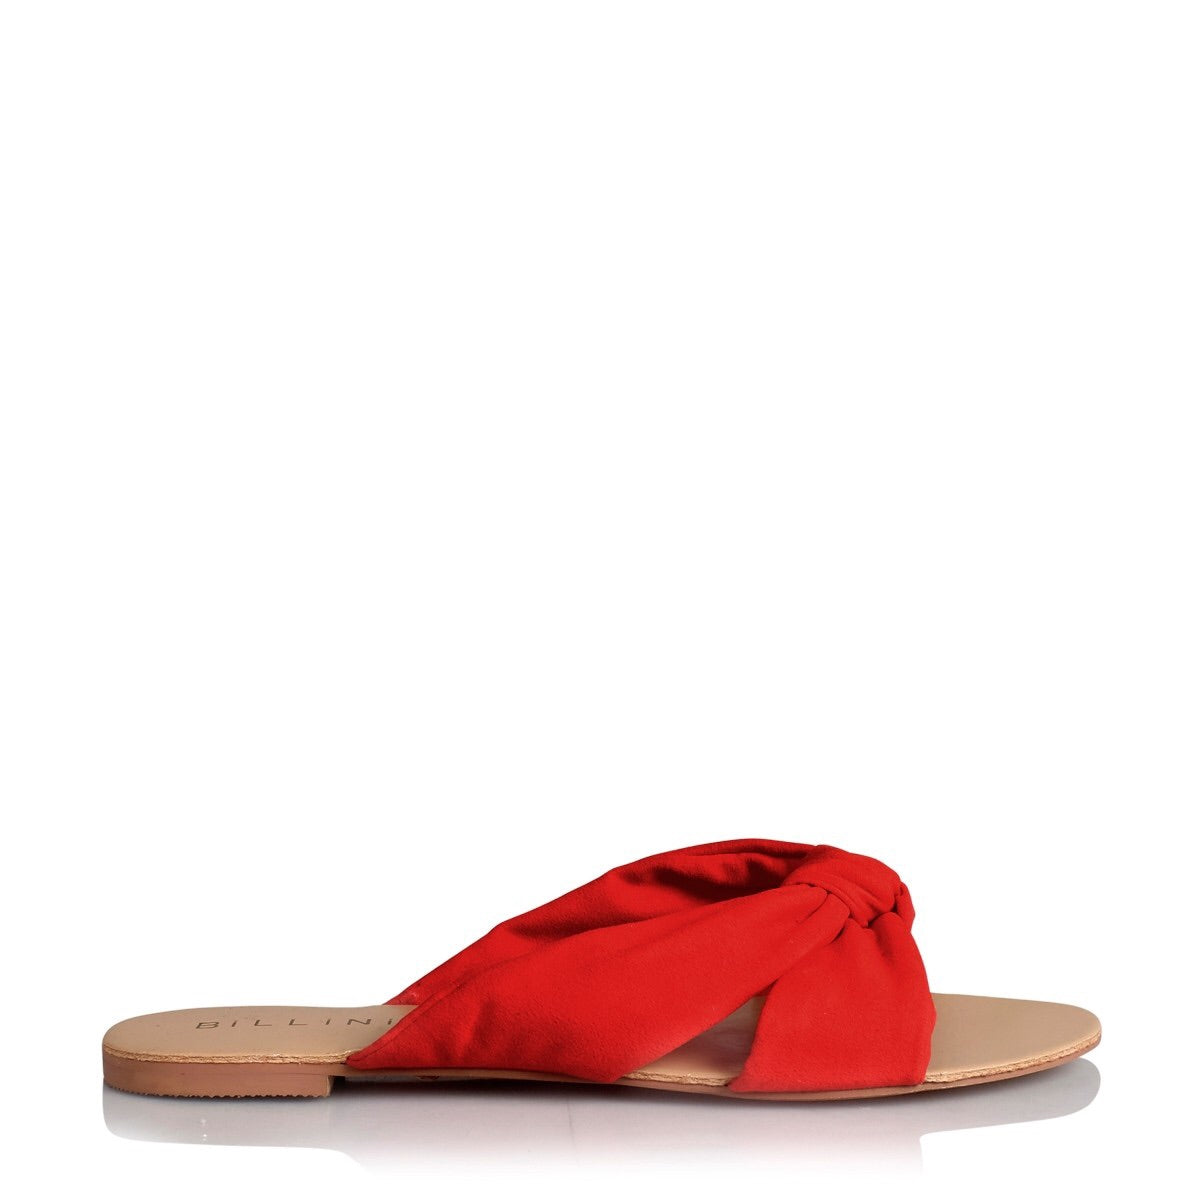 Comino Red Slides